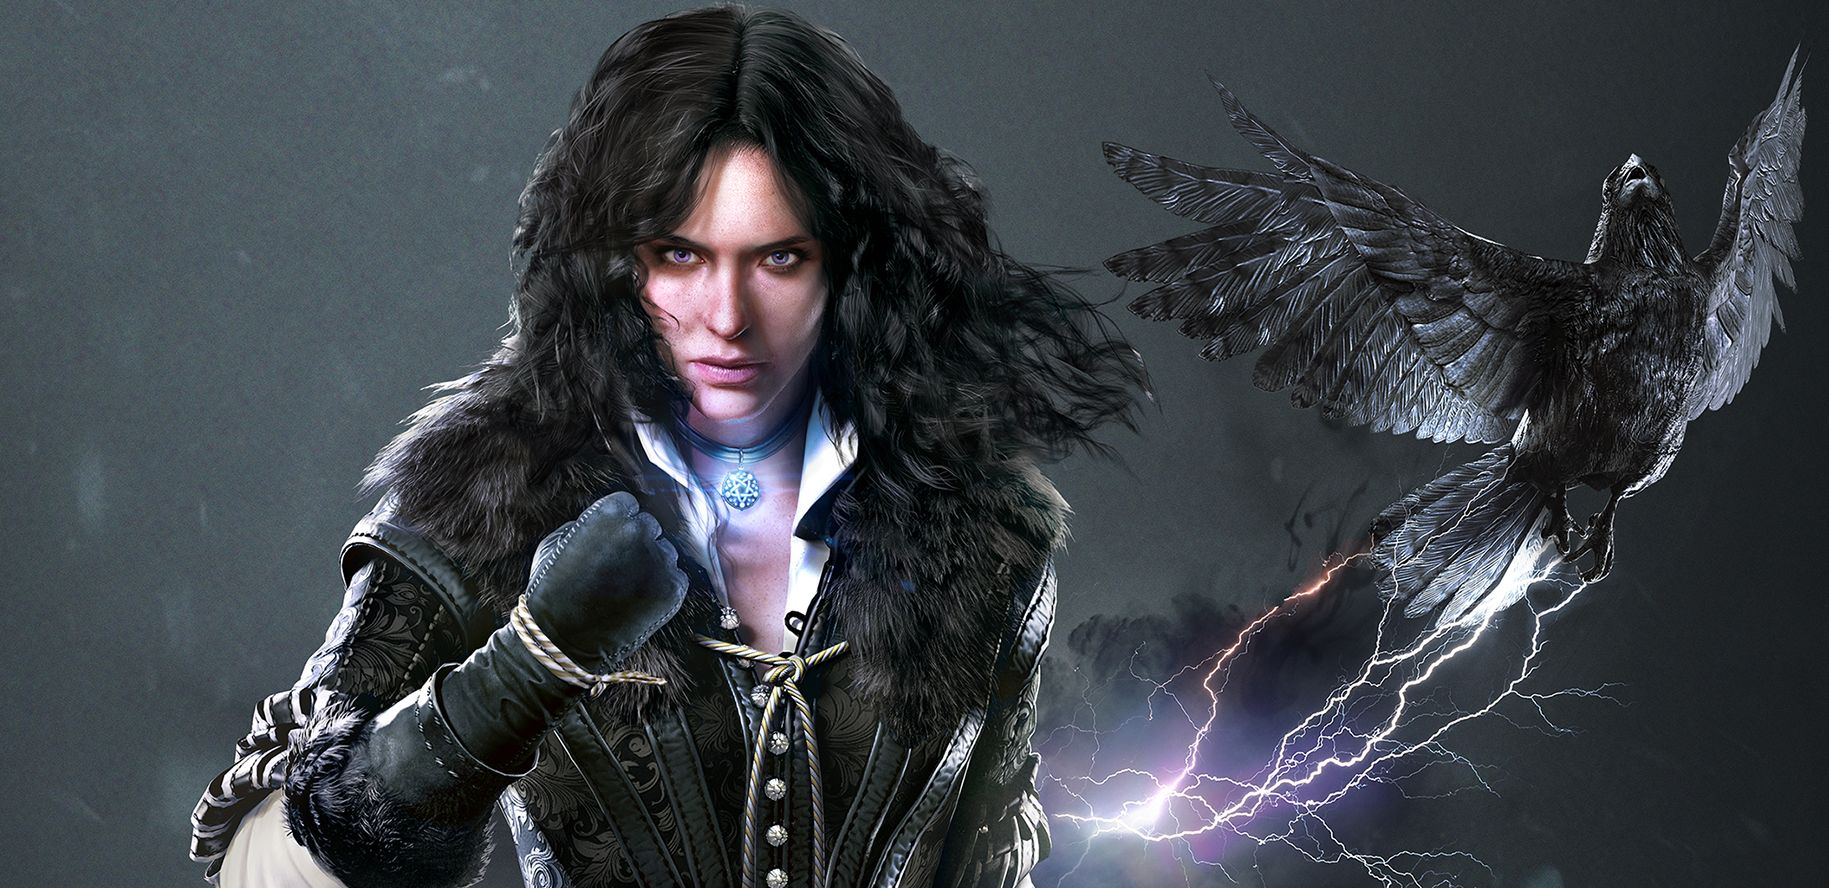 The Witcher 3 art Yennefer